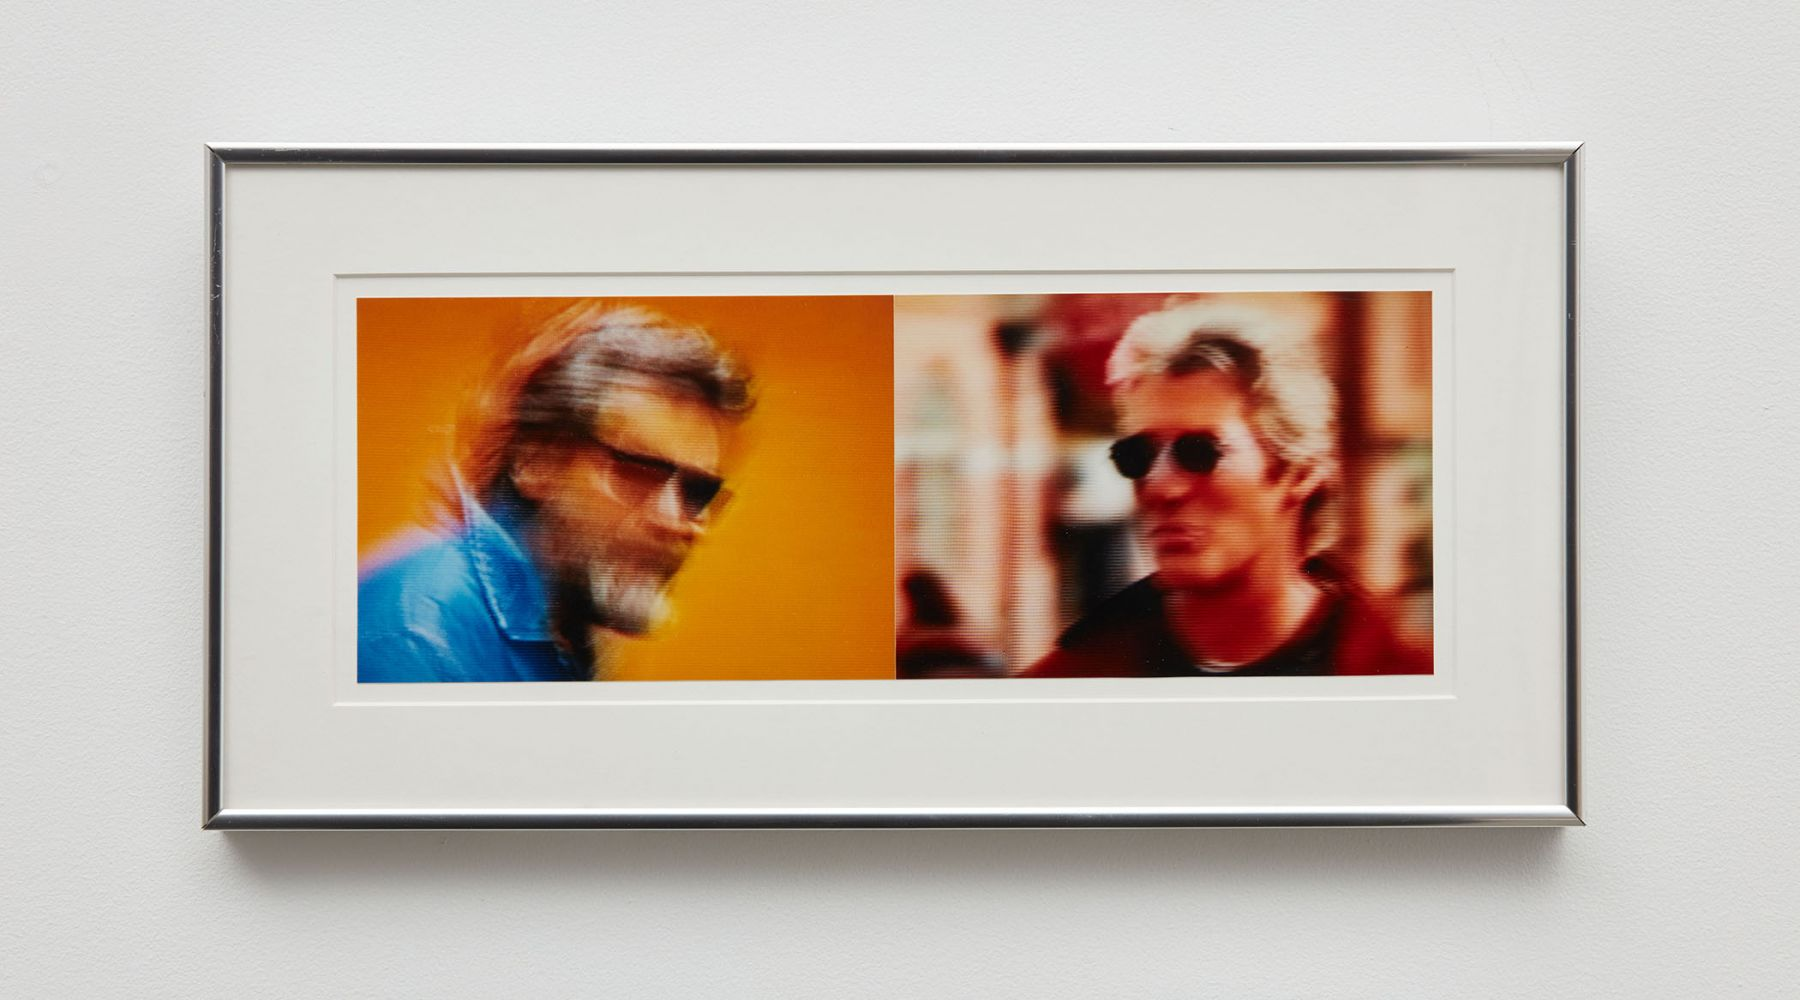 Richard Gere print by John Waters